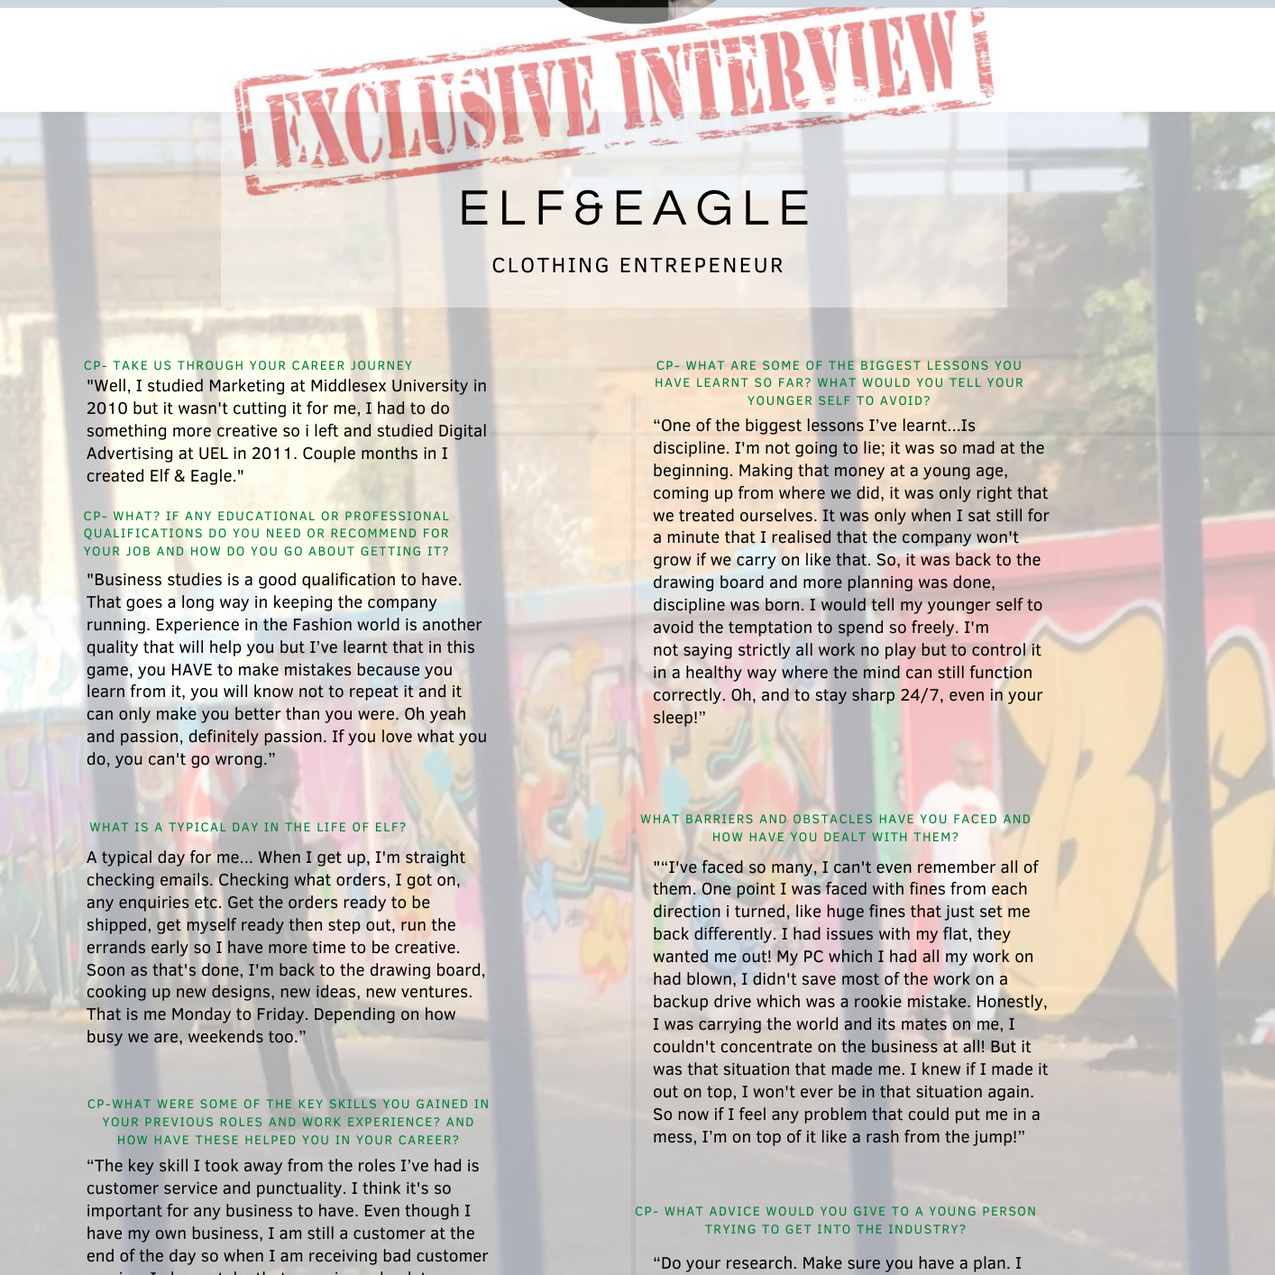 Interview with Elf&Eagle CEO